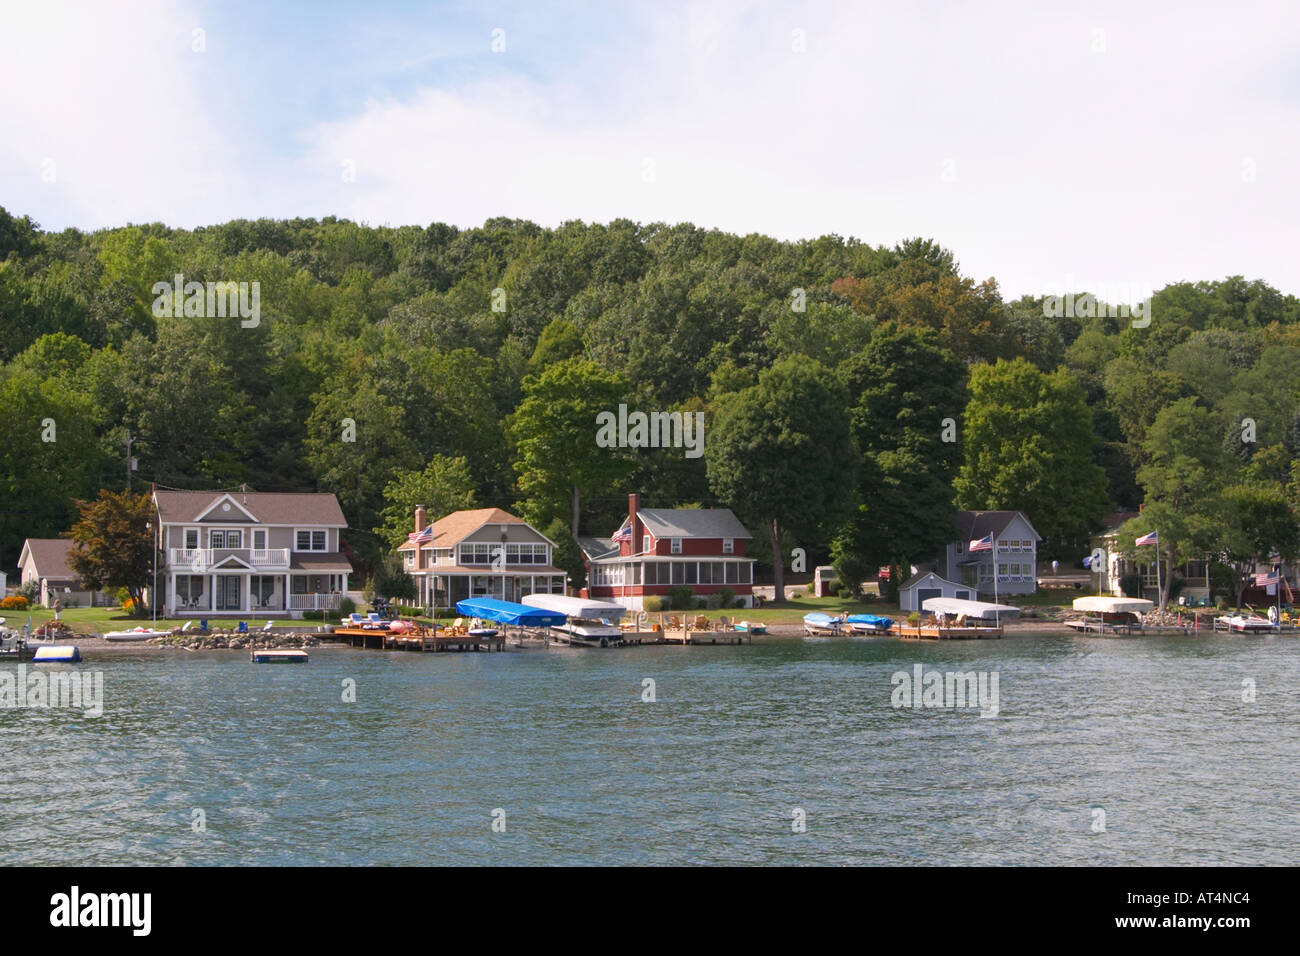 Houses on keuka lake in the finger lakes region of new york state houses on keuka lake in the finger lakes region of new york state sciox Images